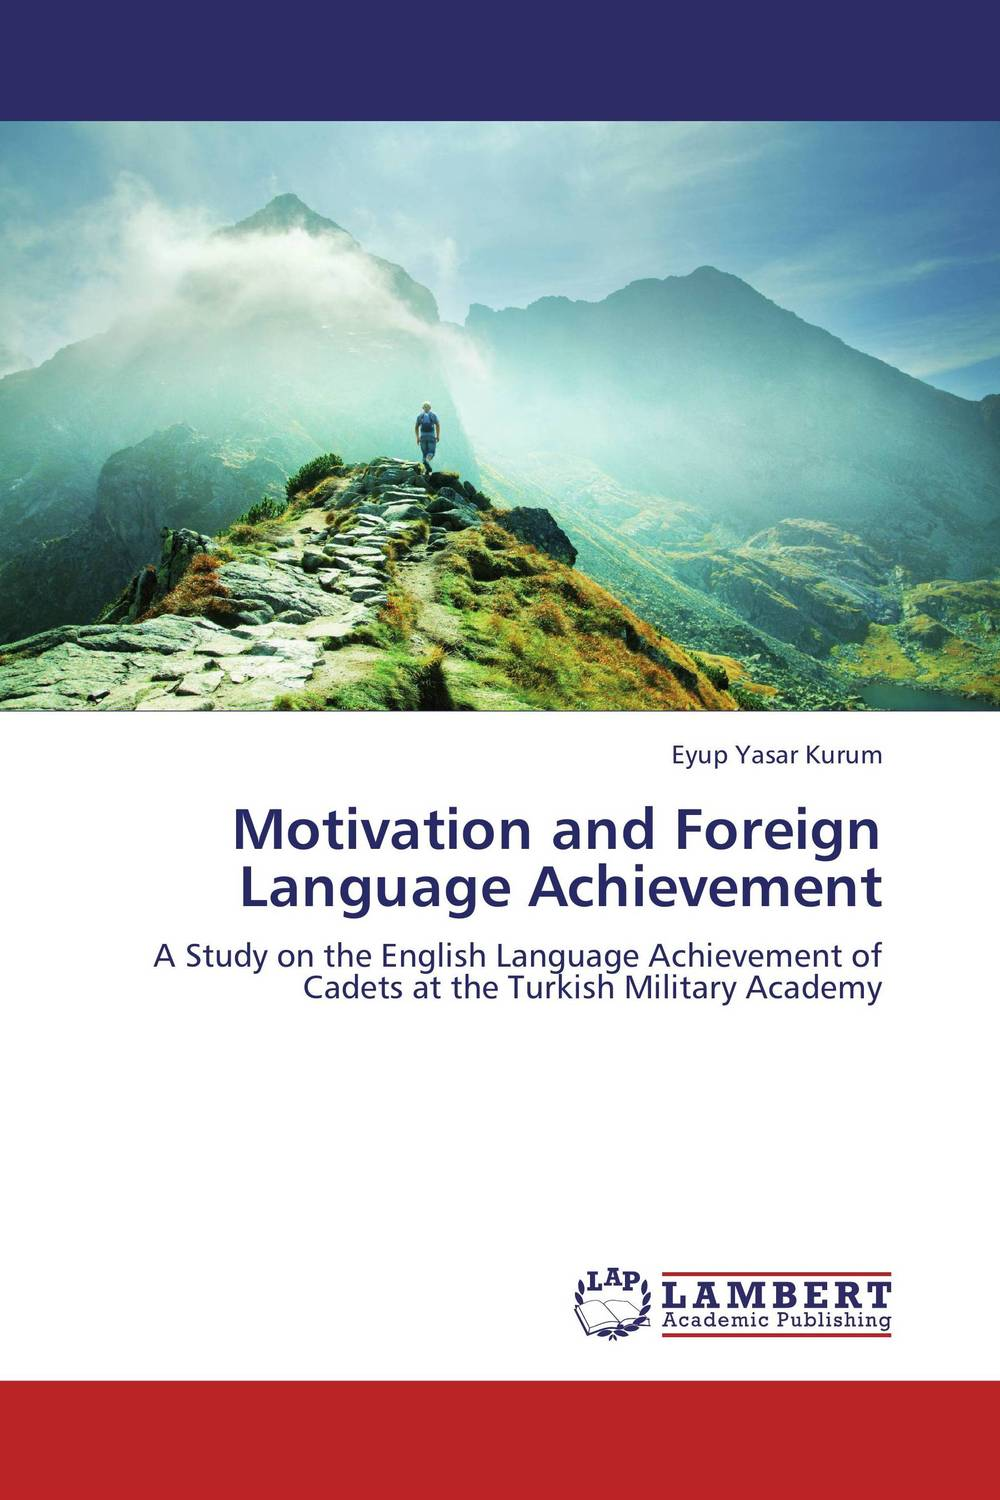 Motivation and Foreign Language Achievement mick johnson motivation is at